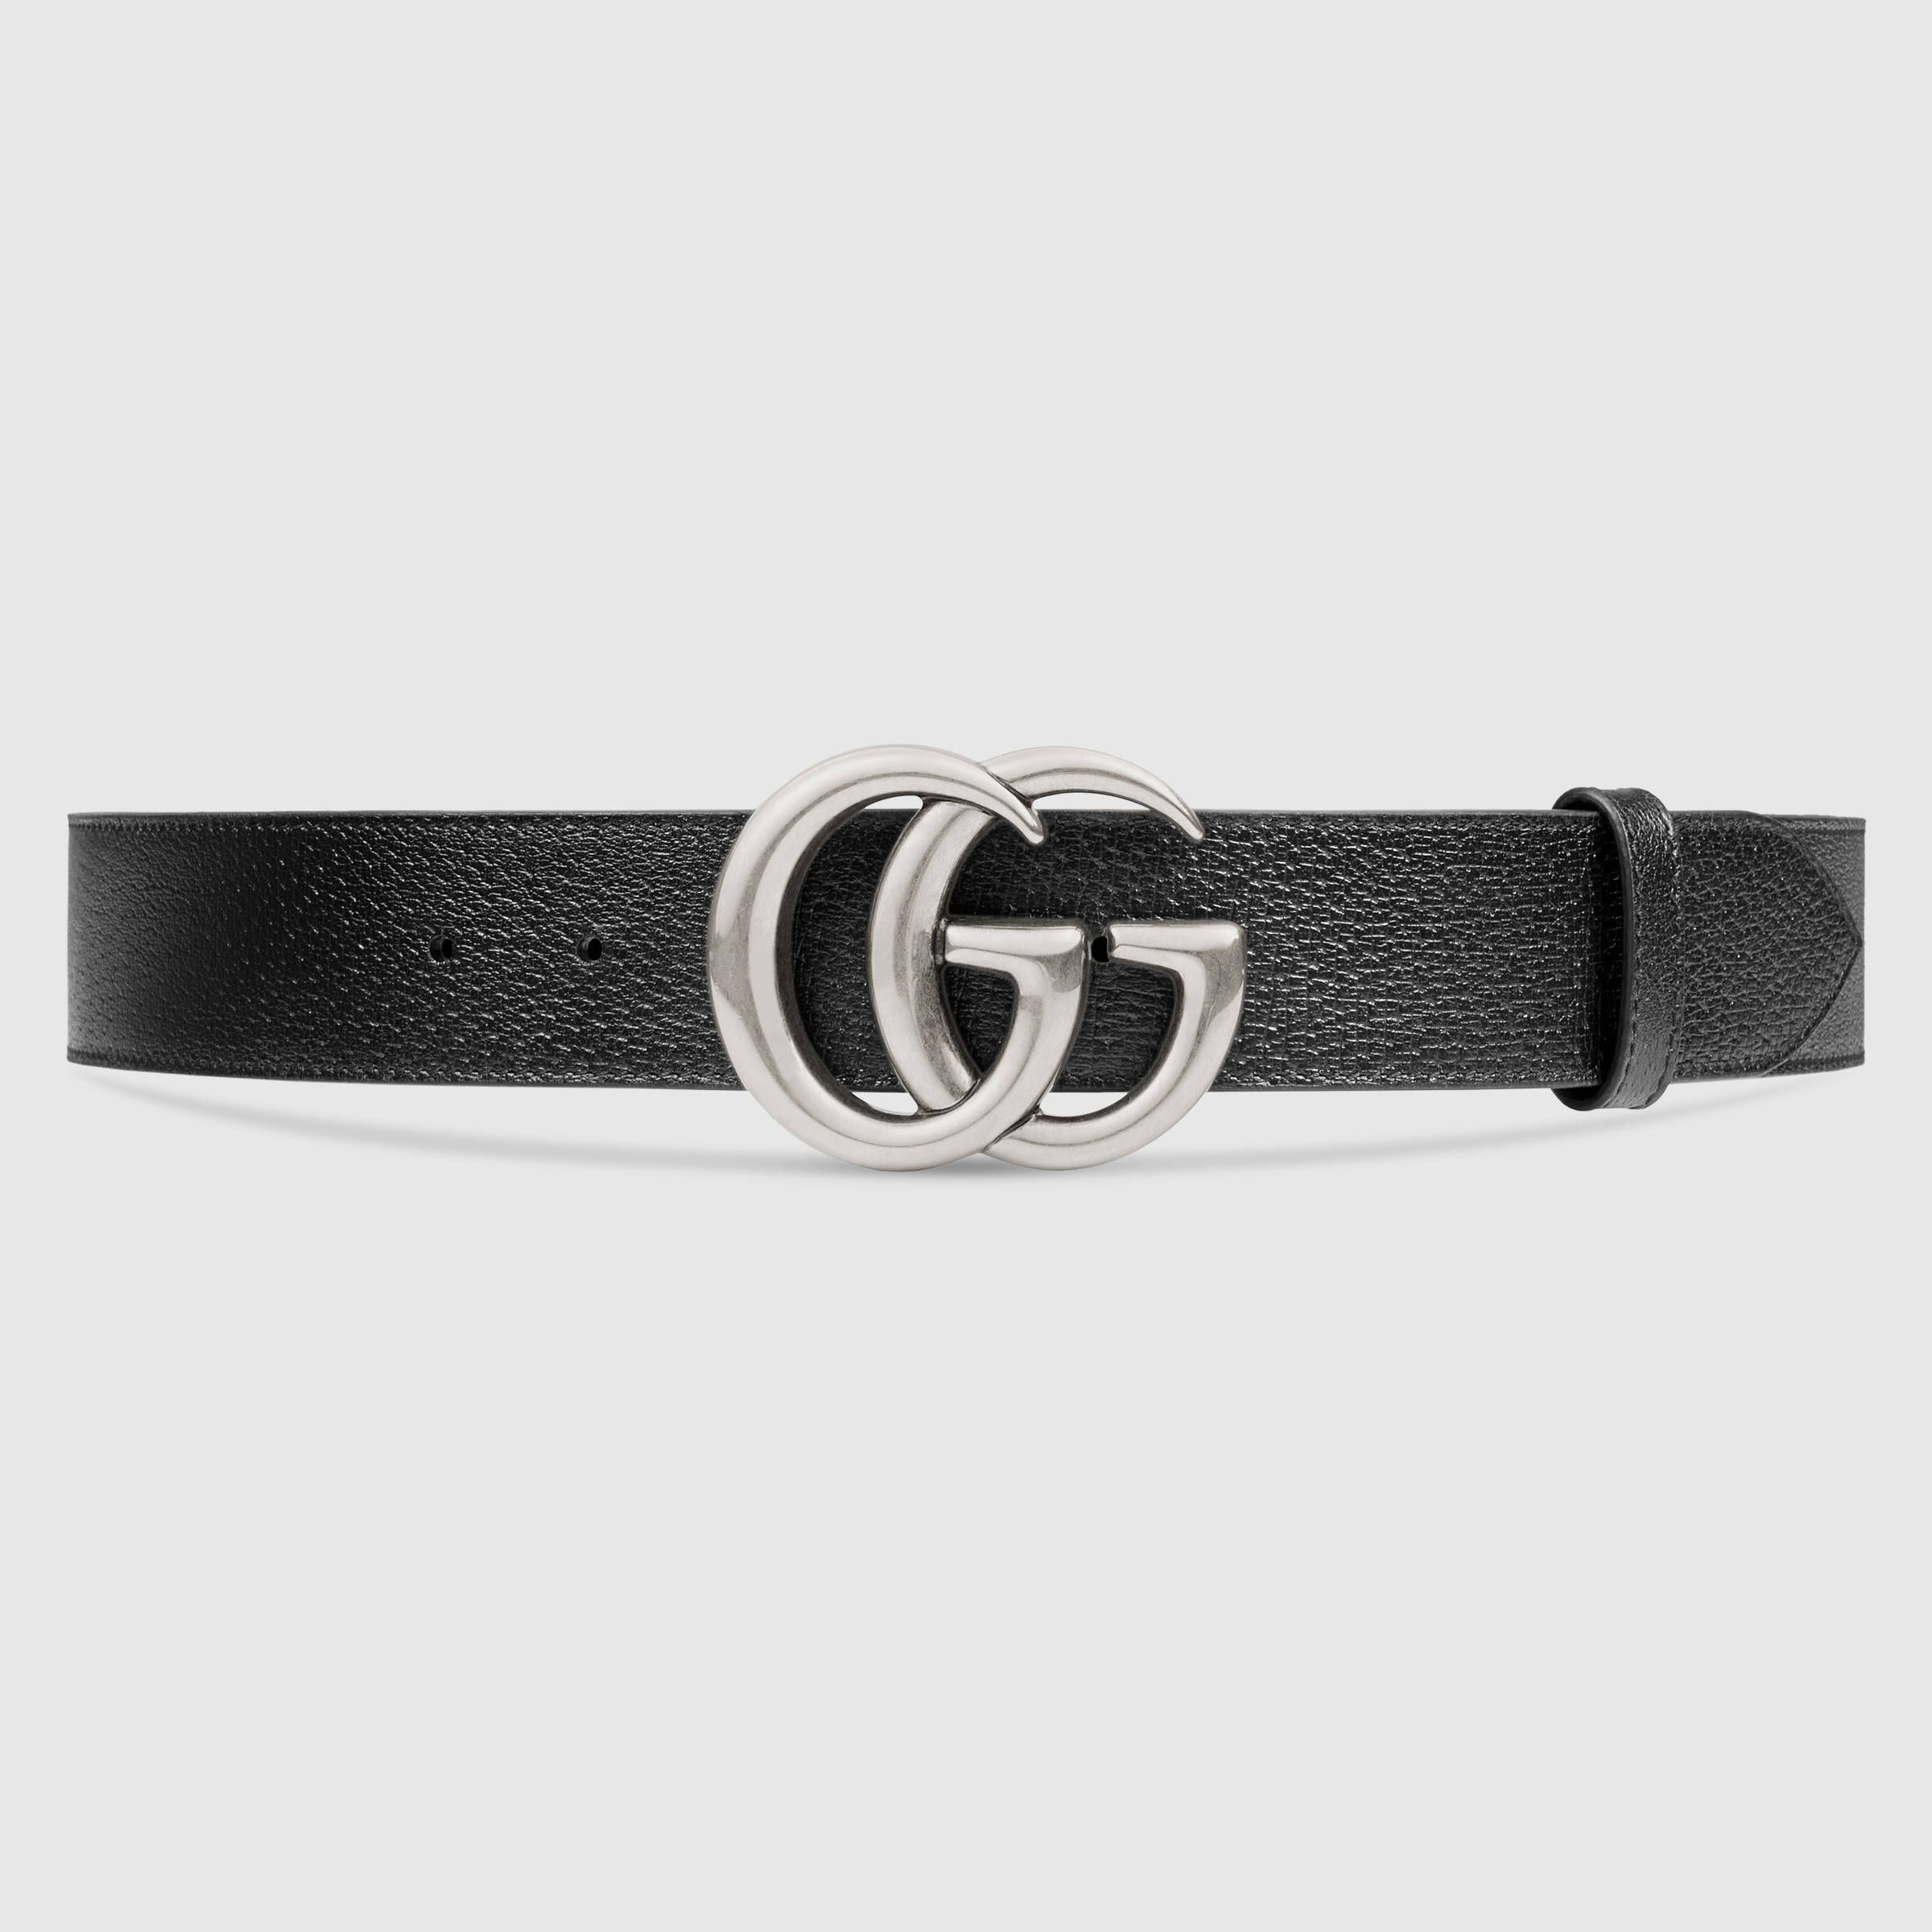 dee973fcd5e  450 Leather belt with double G buckle in silver